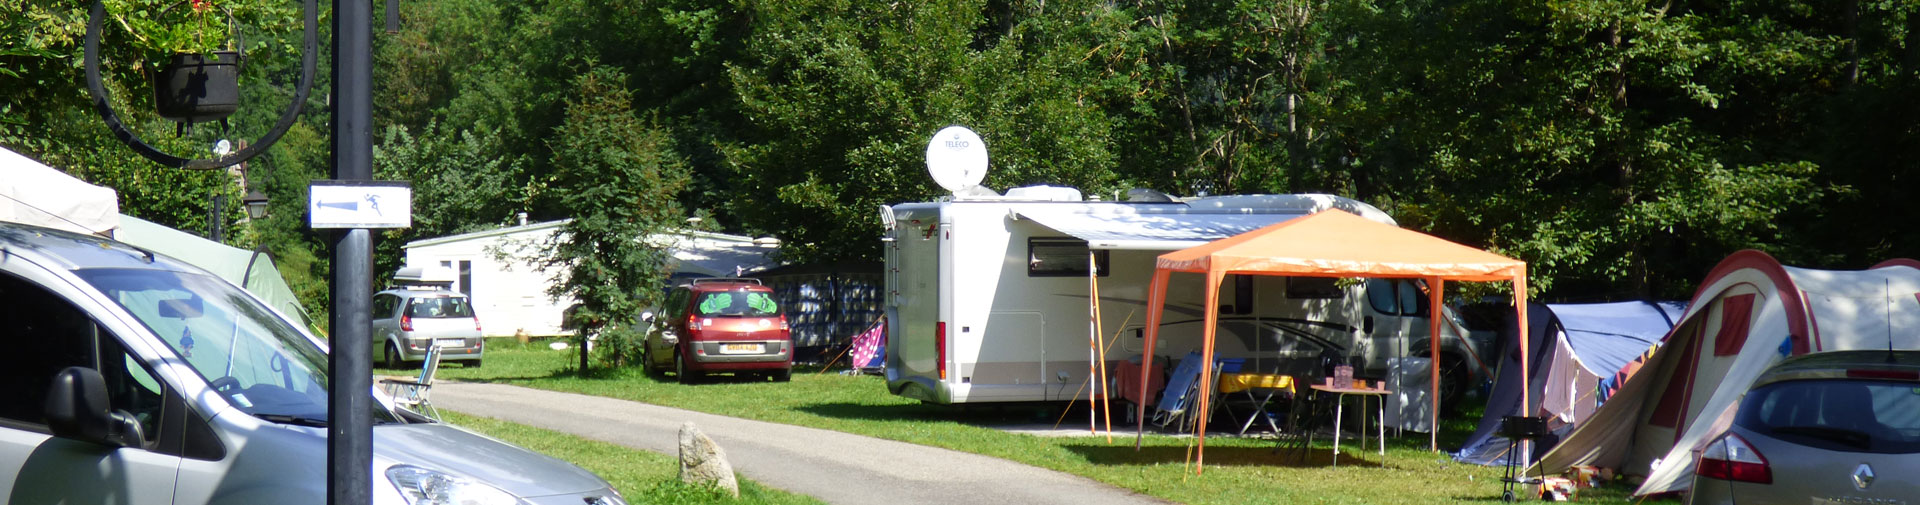 emplacement-camping-oree-des-monts-hautes-pyrenees